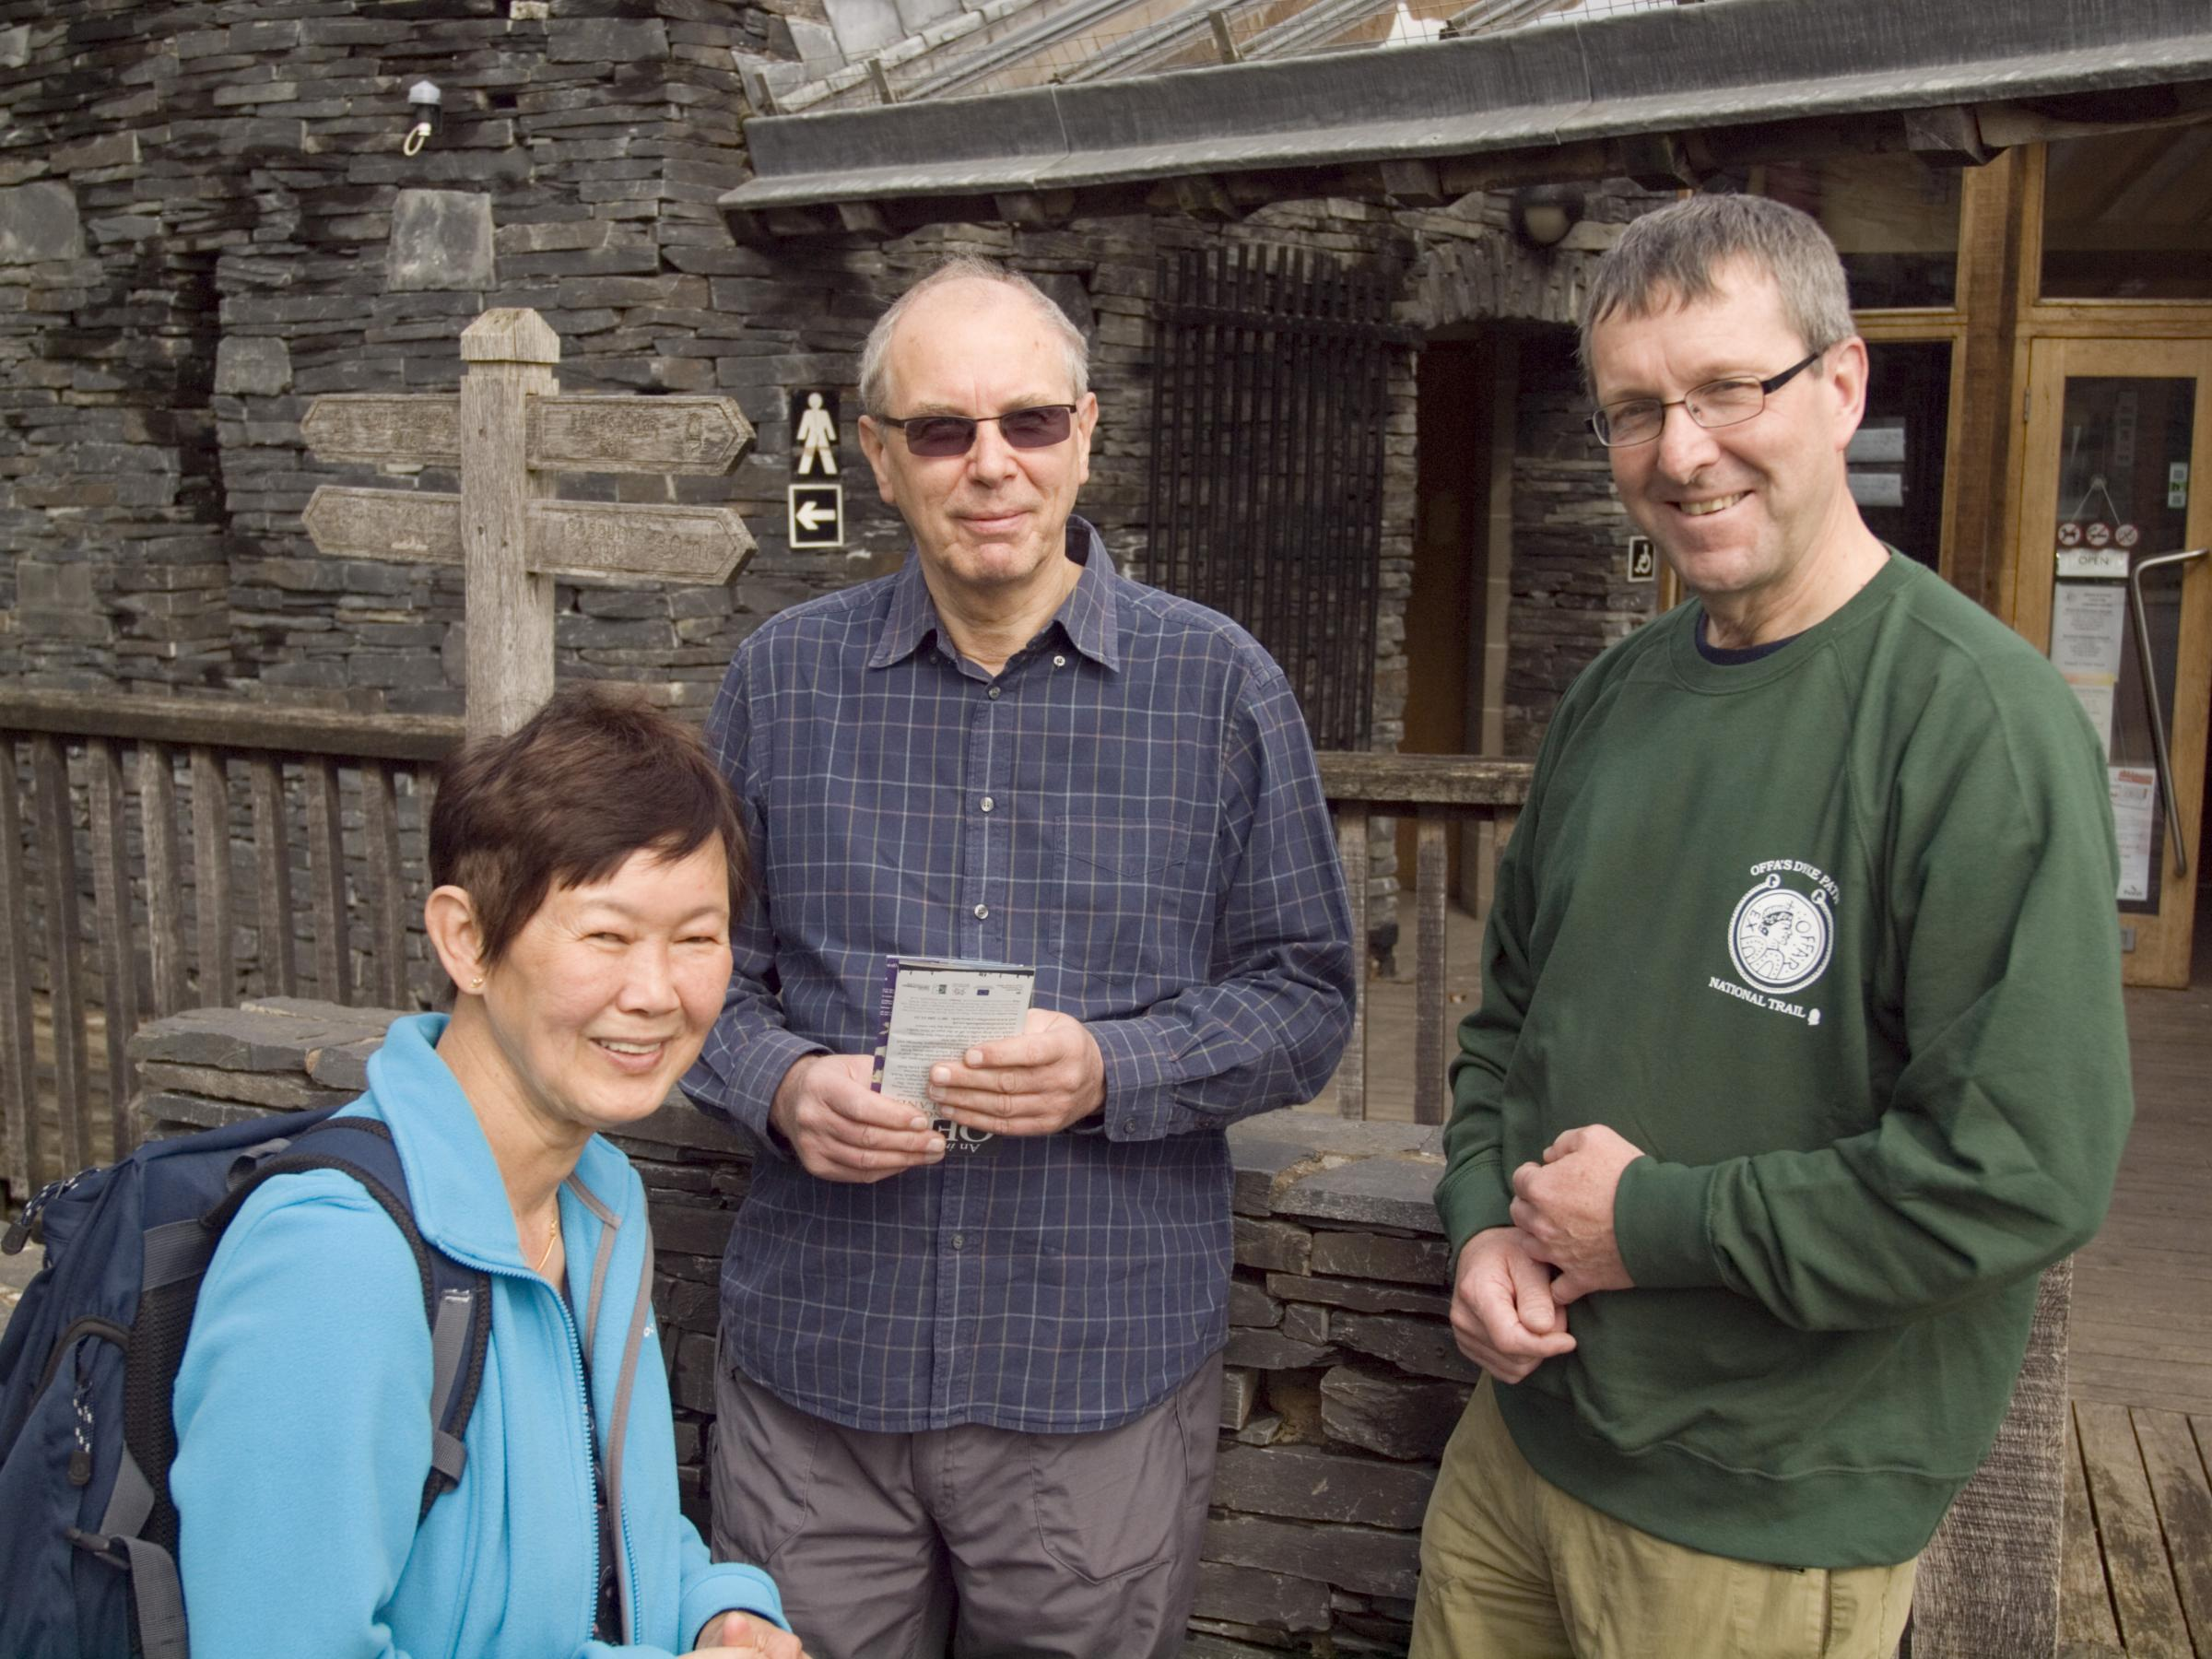 Chairman David McGlade talks with walkers at the Offa's Dyke Centre in Kni